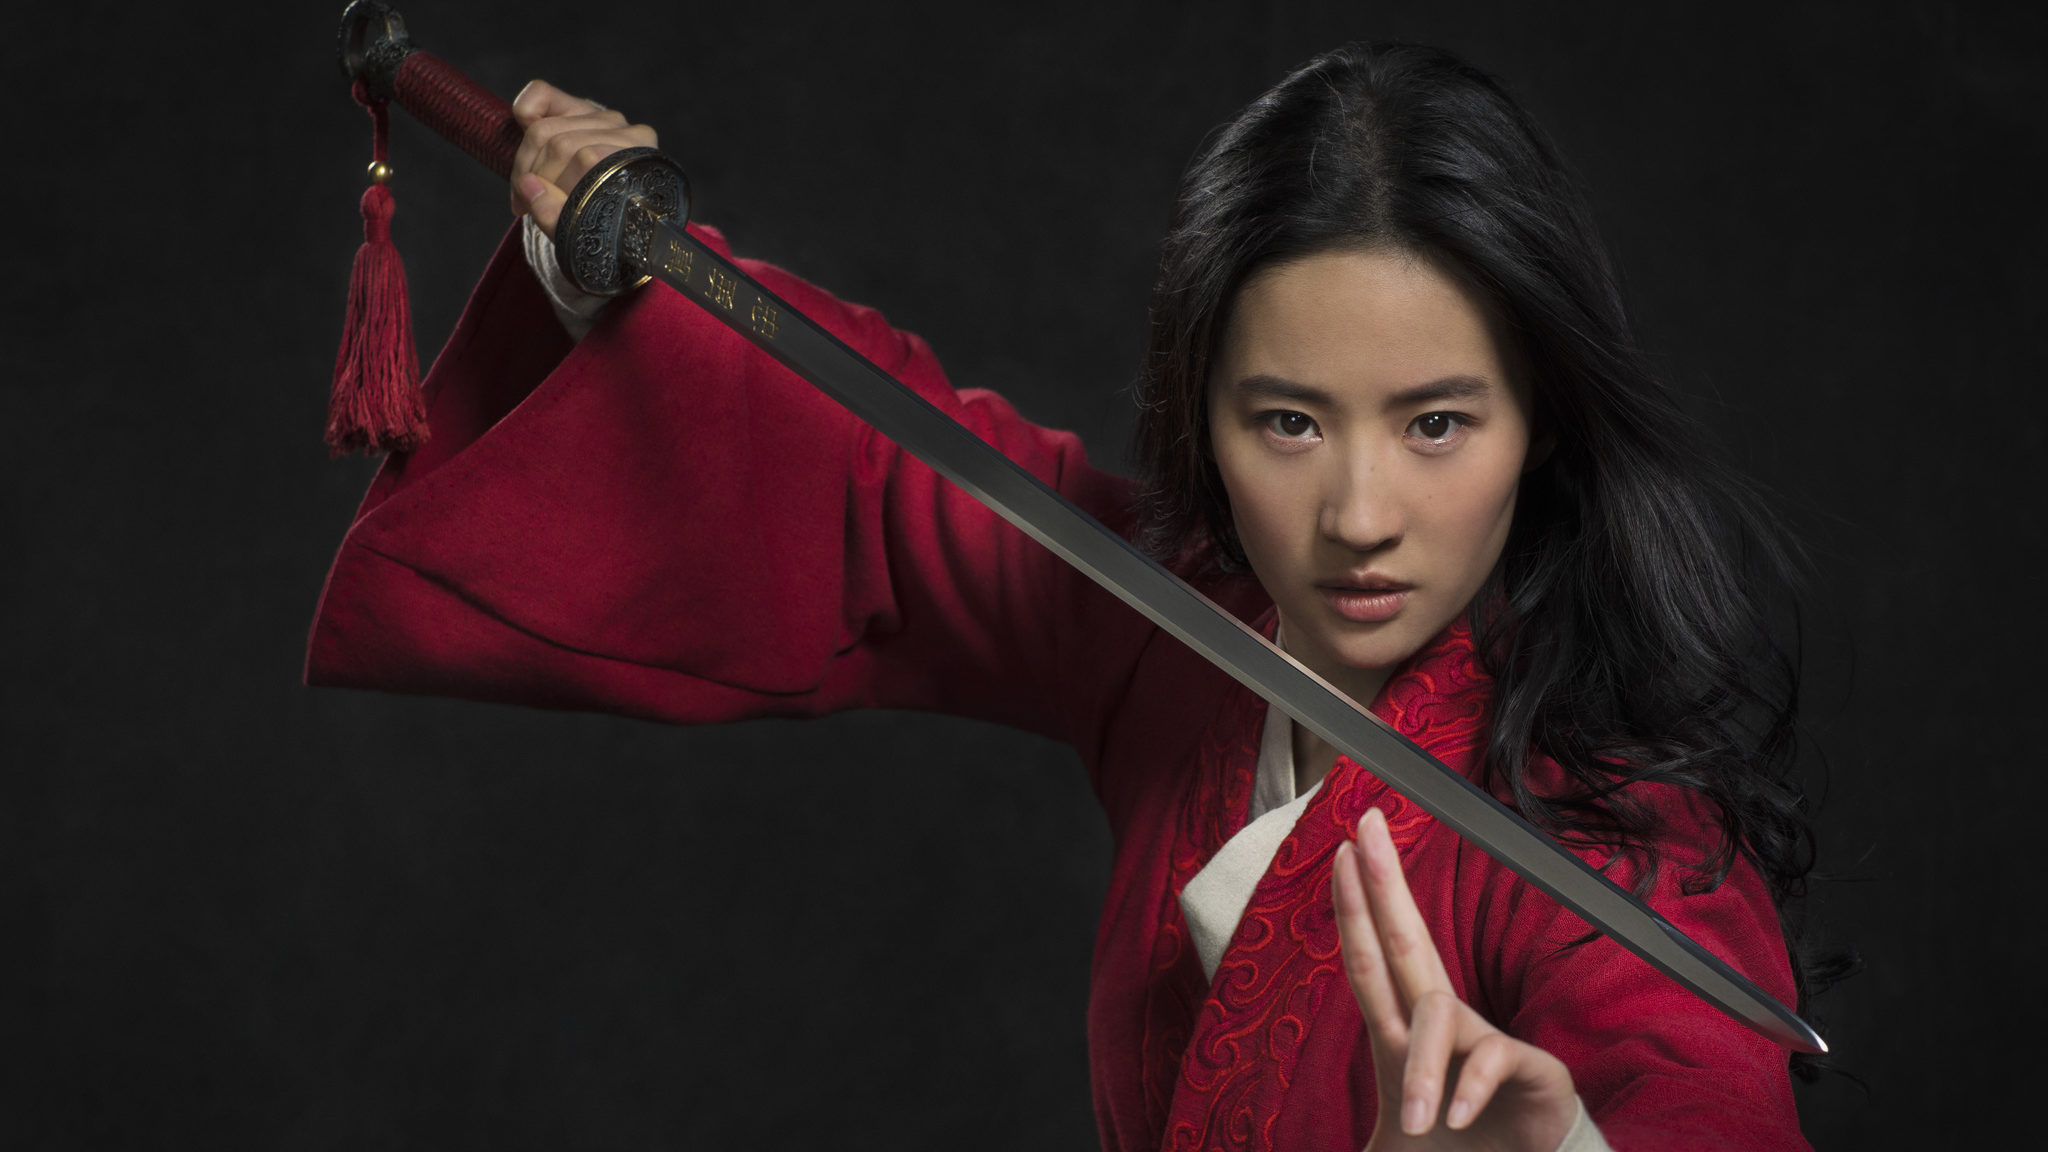 Disney S Live Action Mulan Reportedly Replaced Mushu The Geek Herald